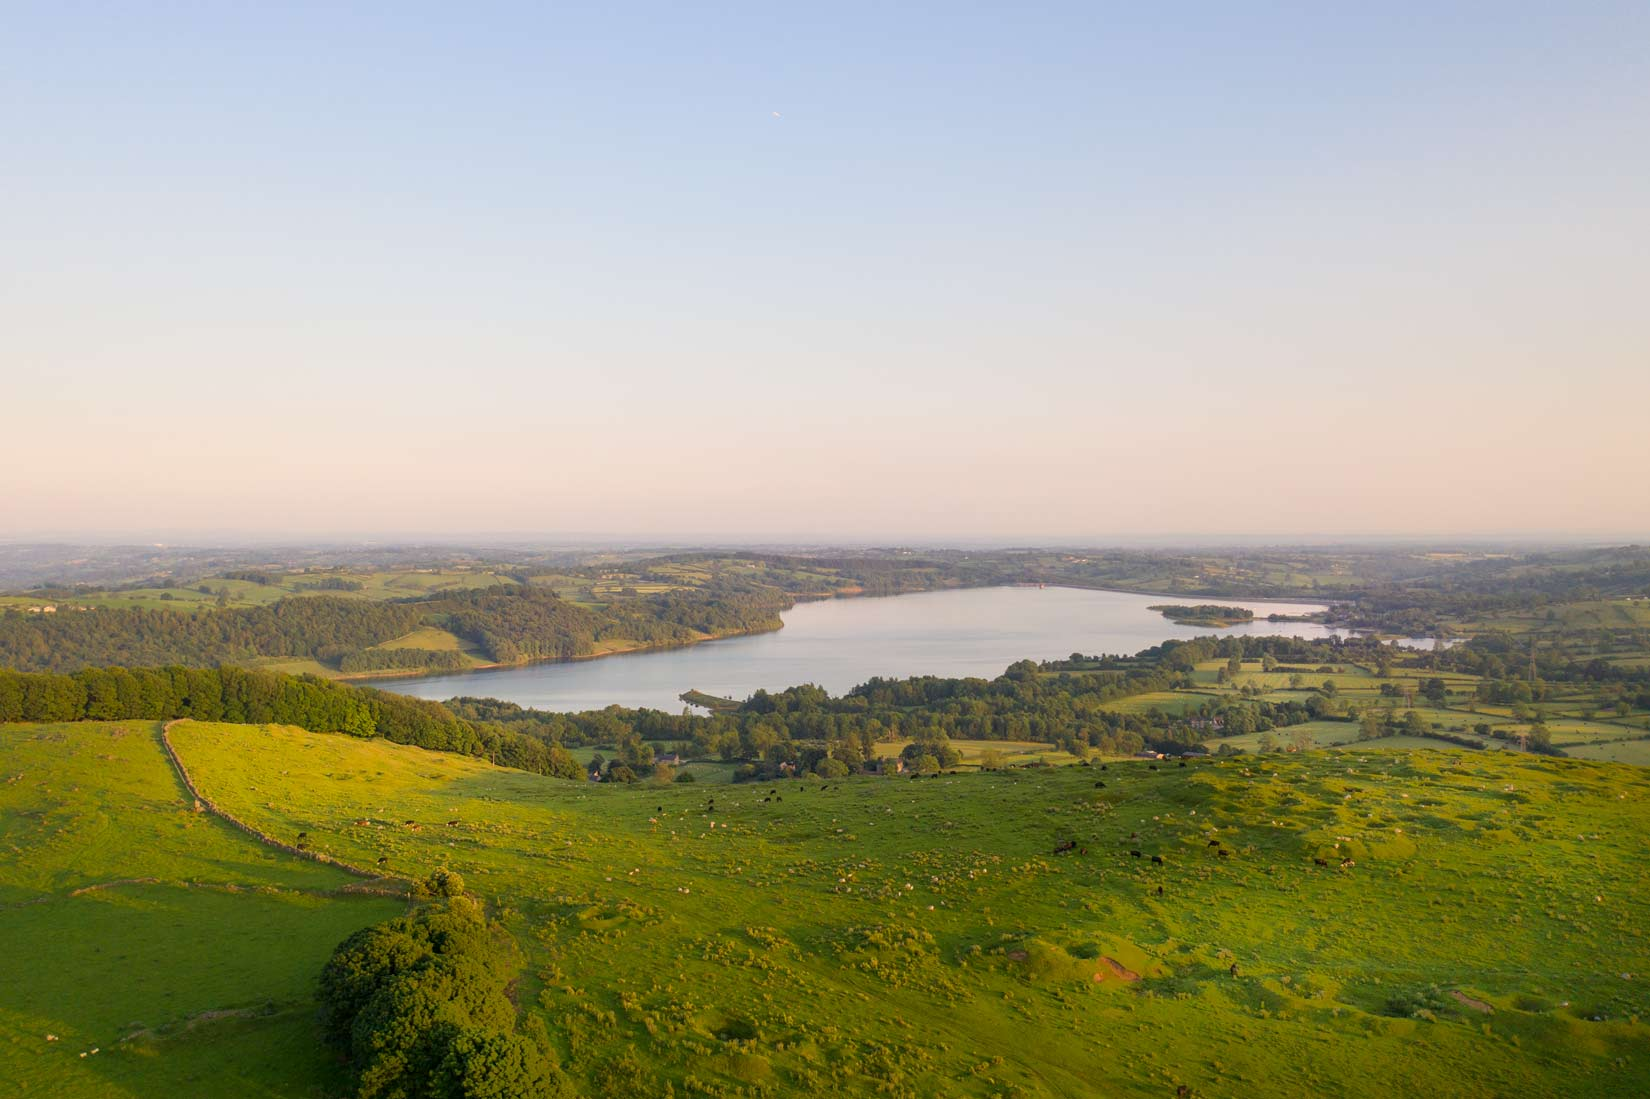 Drone view looking from the wind turibines over Carsington Water towards Derby. Early evening shot with warm hue